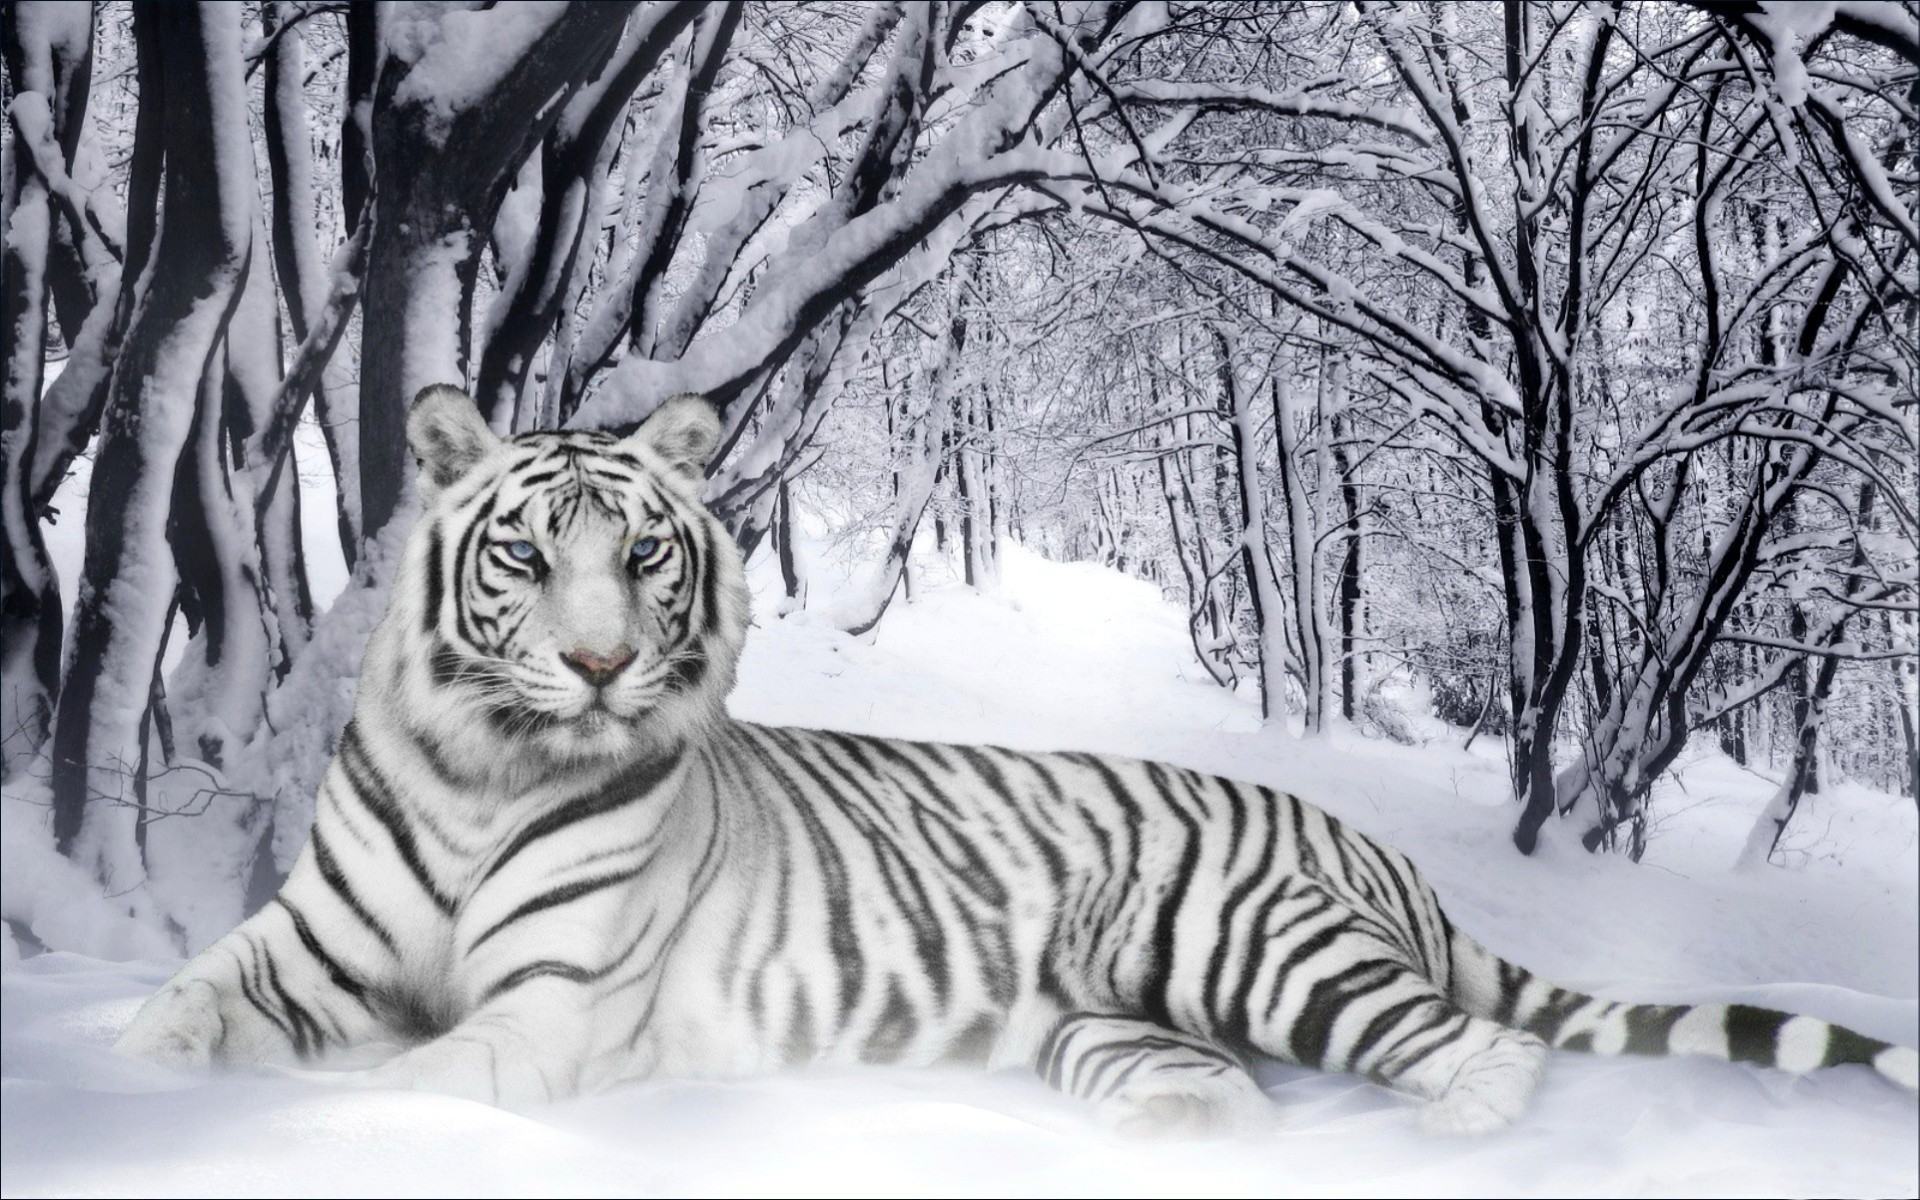 1920x1200 Winter animal desktop Backgrounds